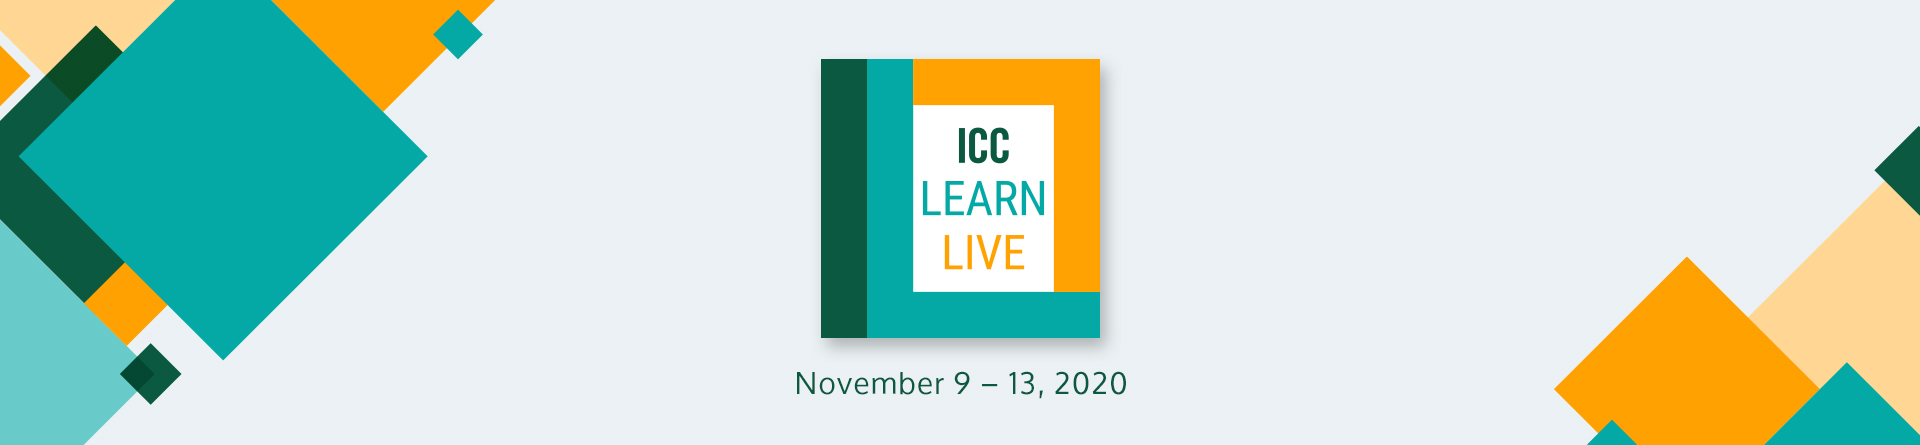 ICC Learn Live Schedule/Resources